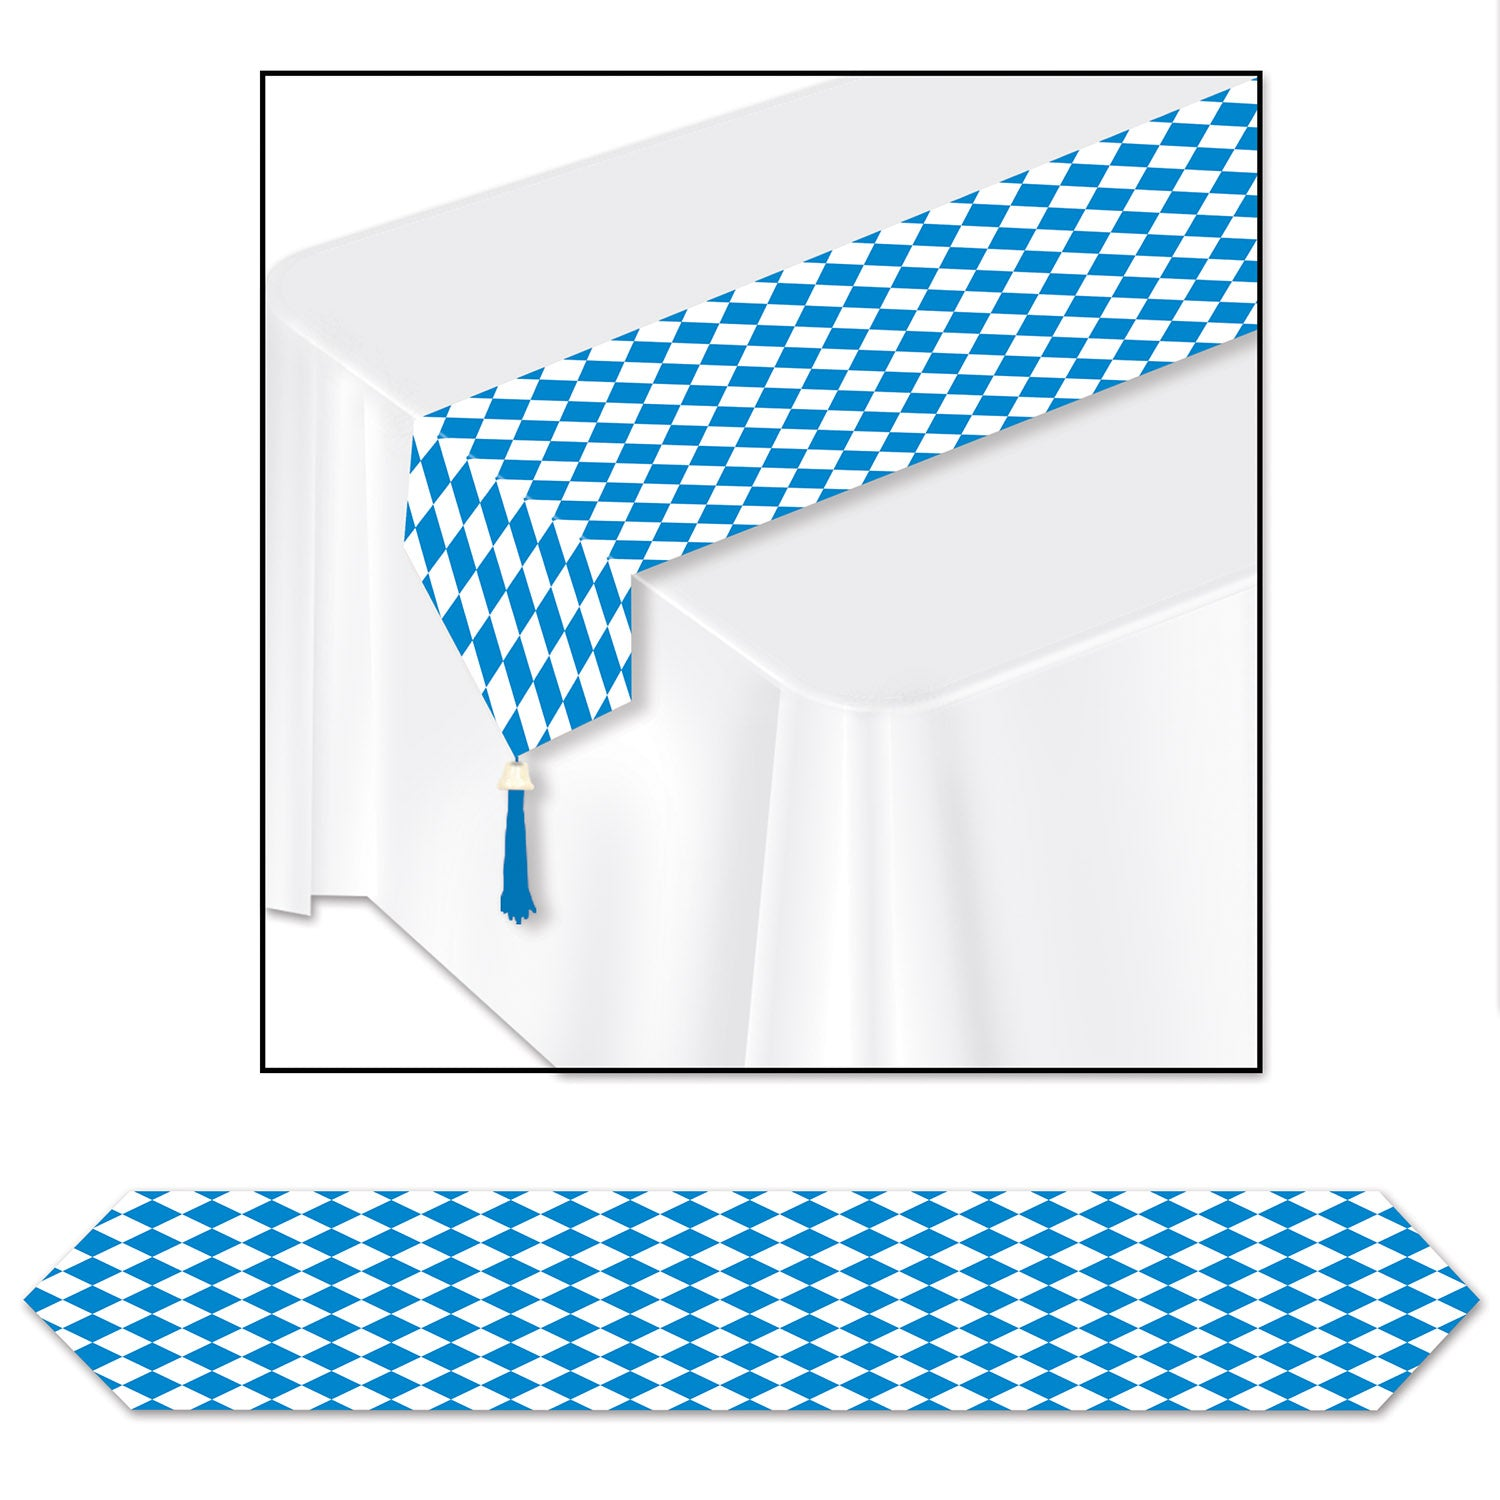 Printed Oktoberfest Table Runner by Beistle - Oktoberfest Theme Decorations